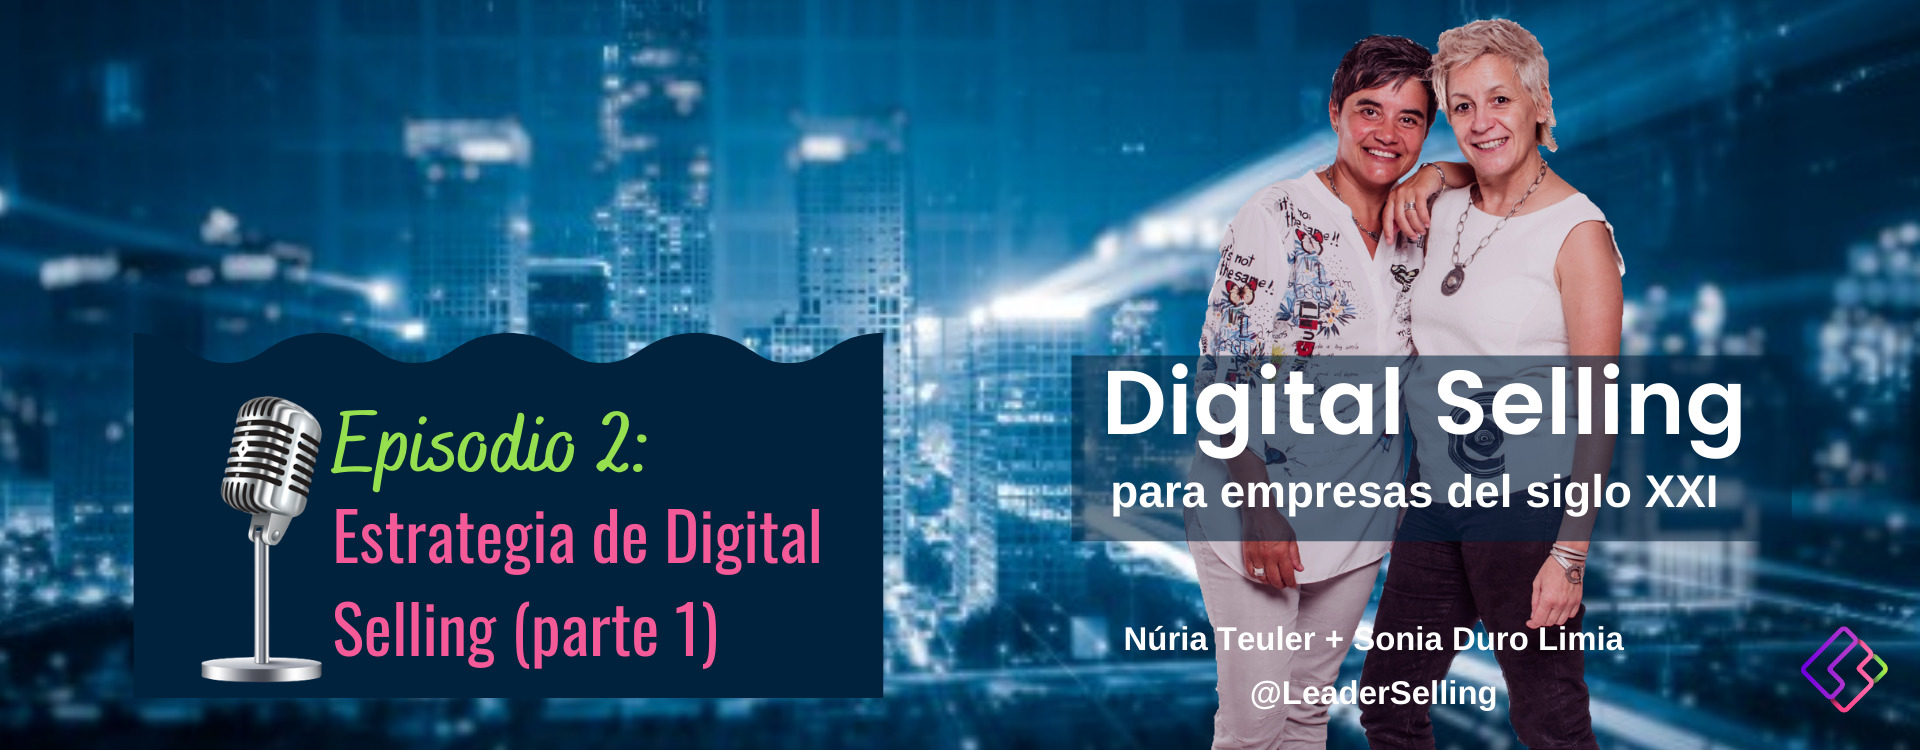 Episodio 2: Estrategia de Digital Selling (parte 1)